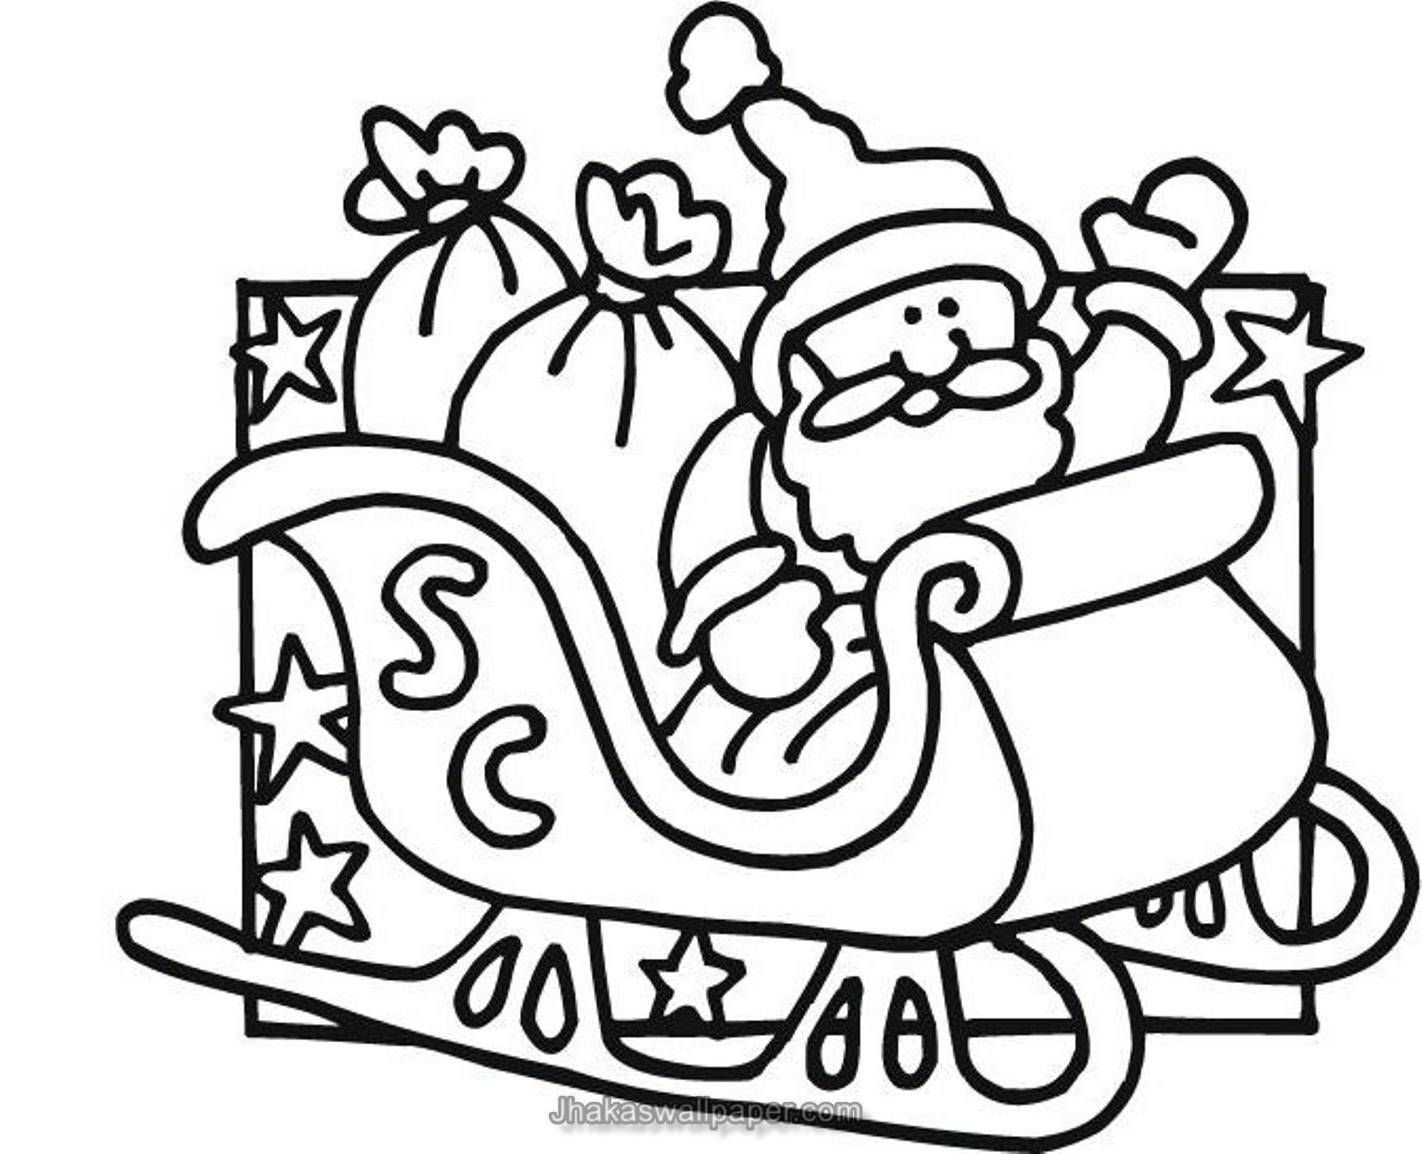 1422x1154 Cute Reindeer Coloring Pages Color Bros New Coloring Sheets